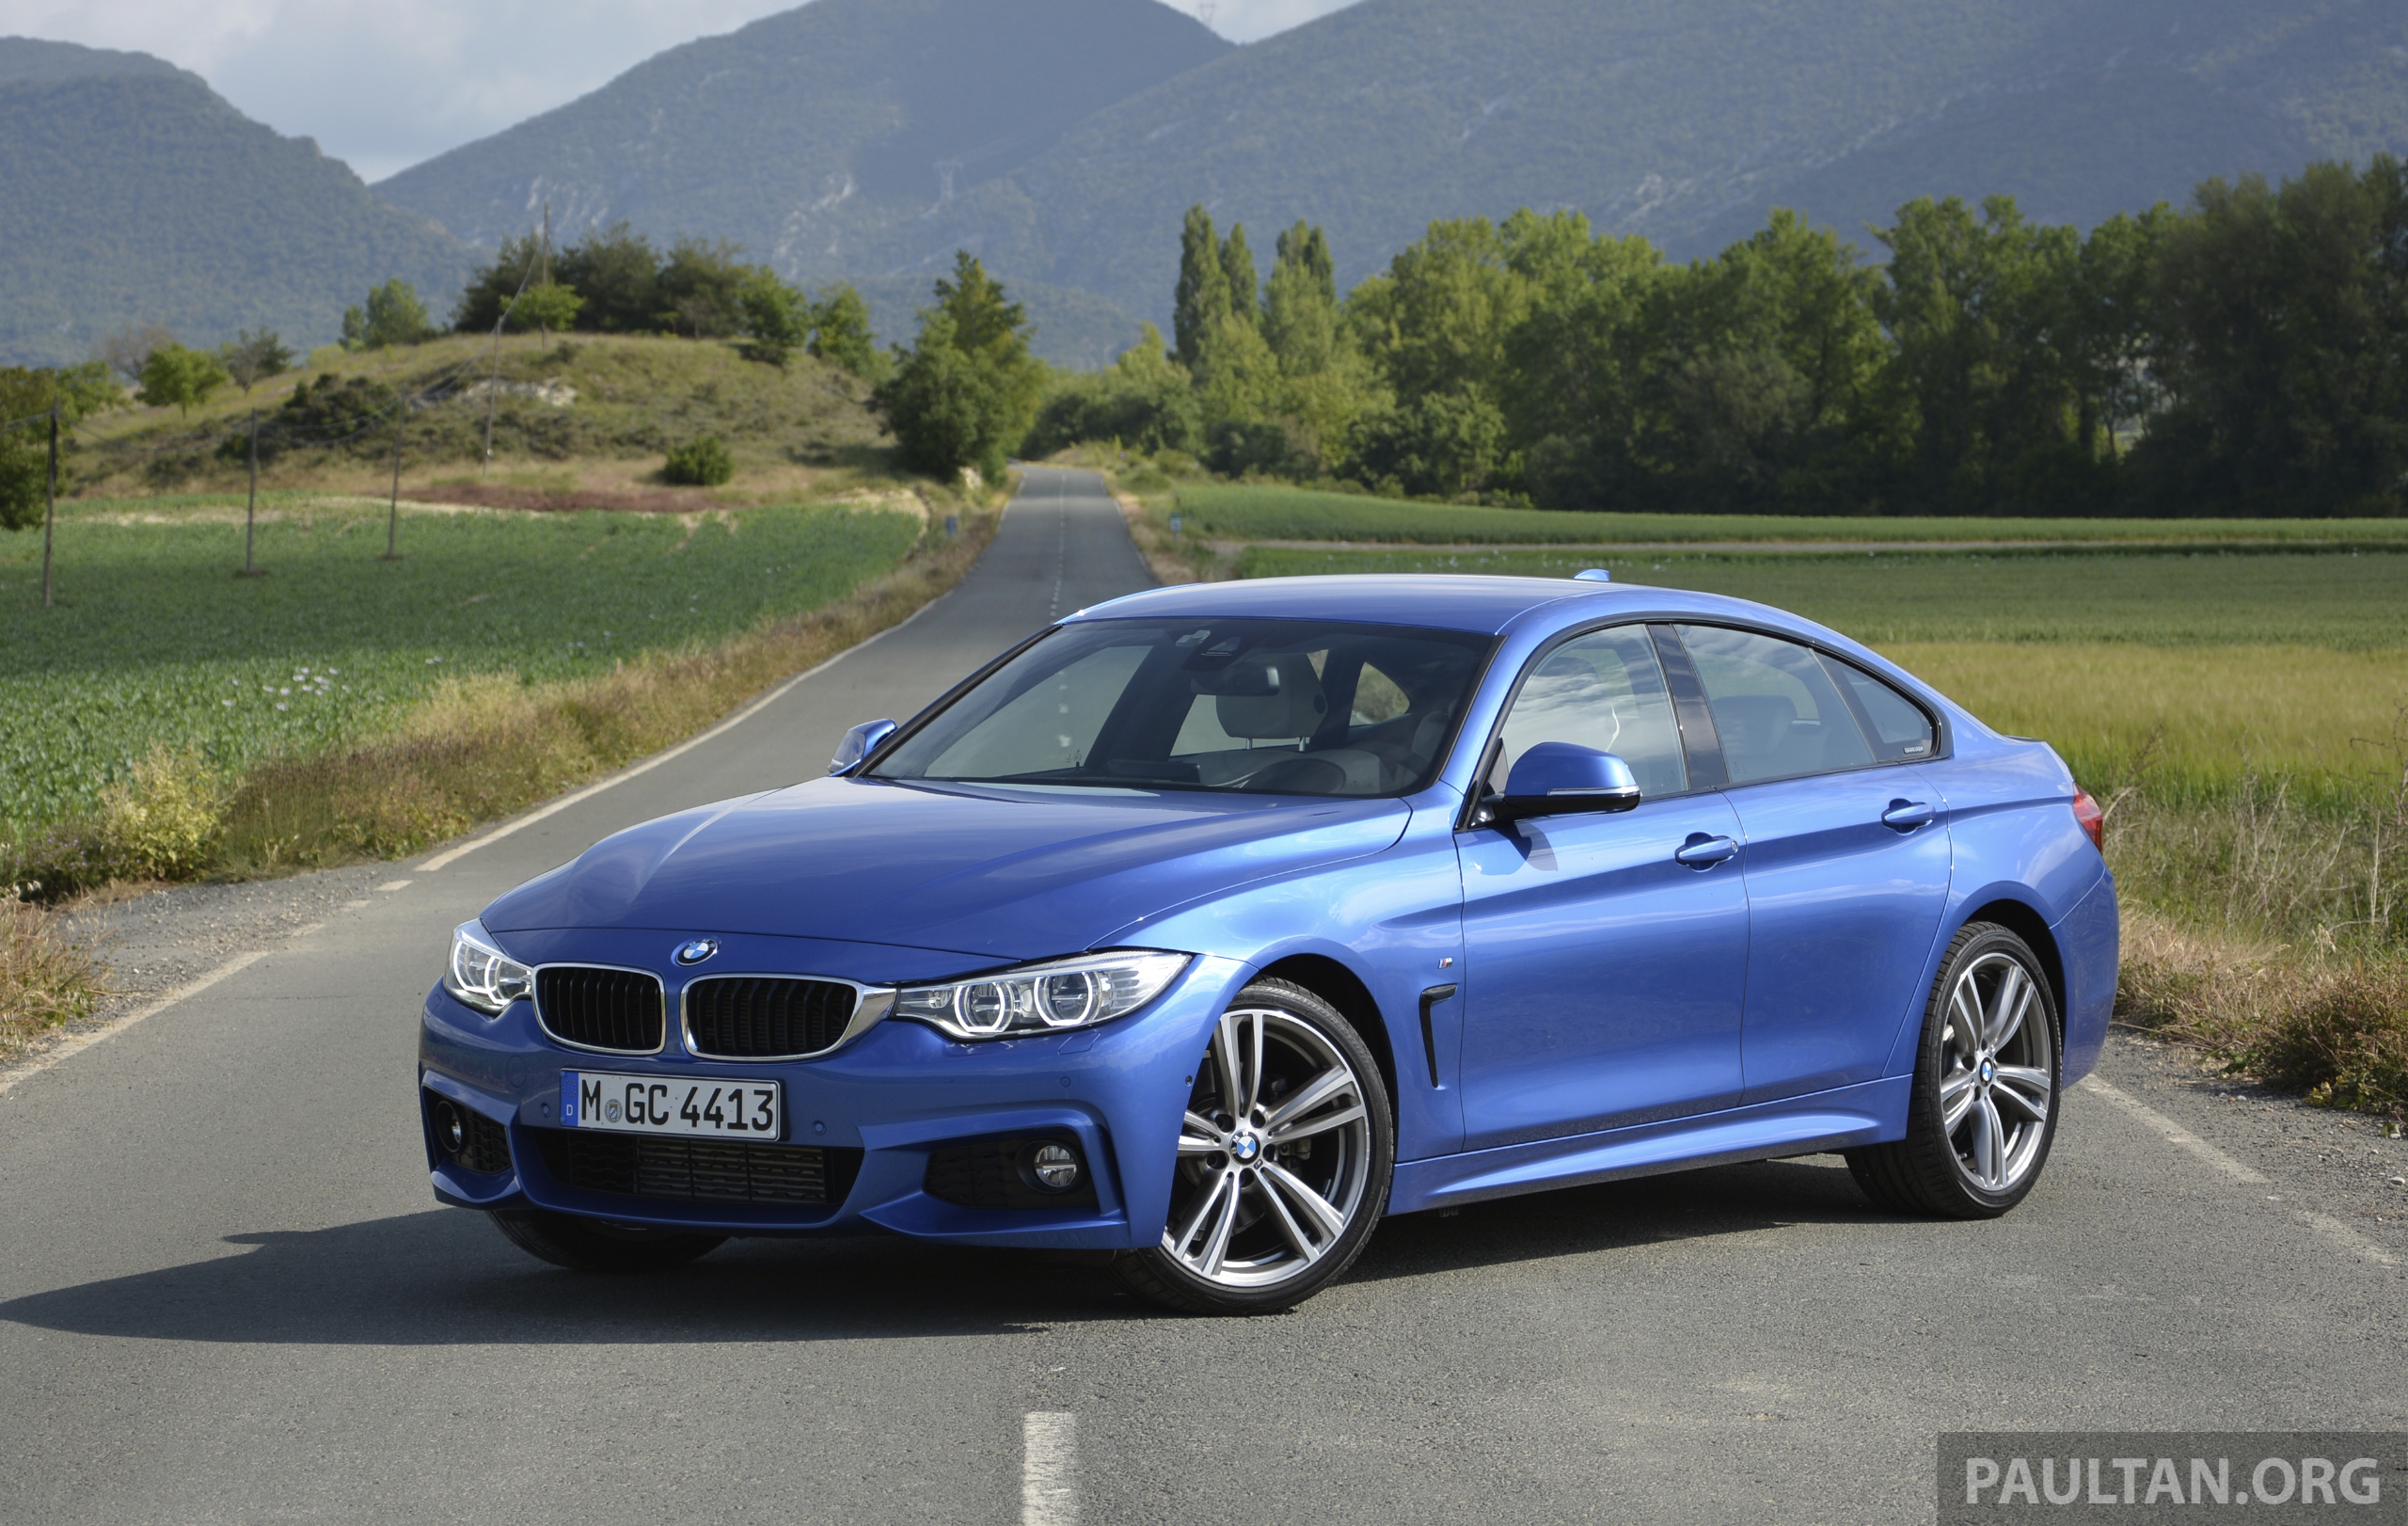 Back to Story: DRIVEN: F36 BMW 4 Series Gran Coupe in Spain